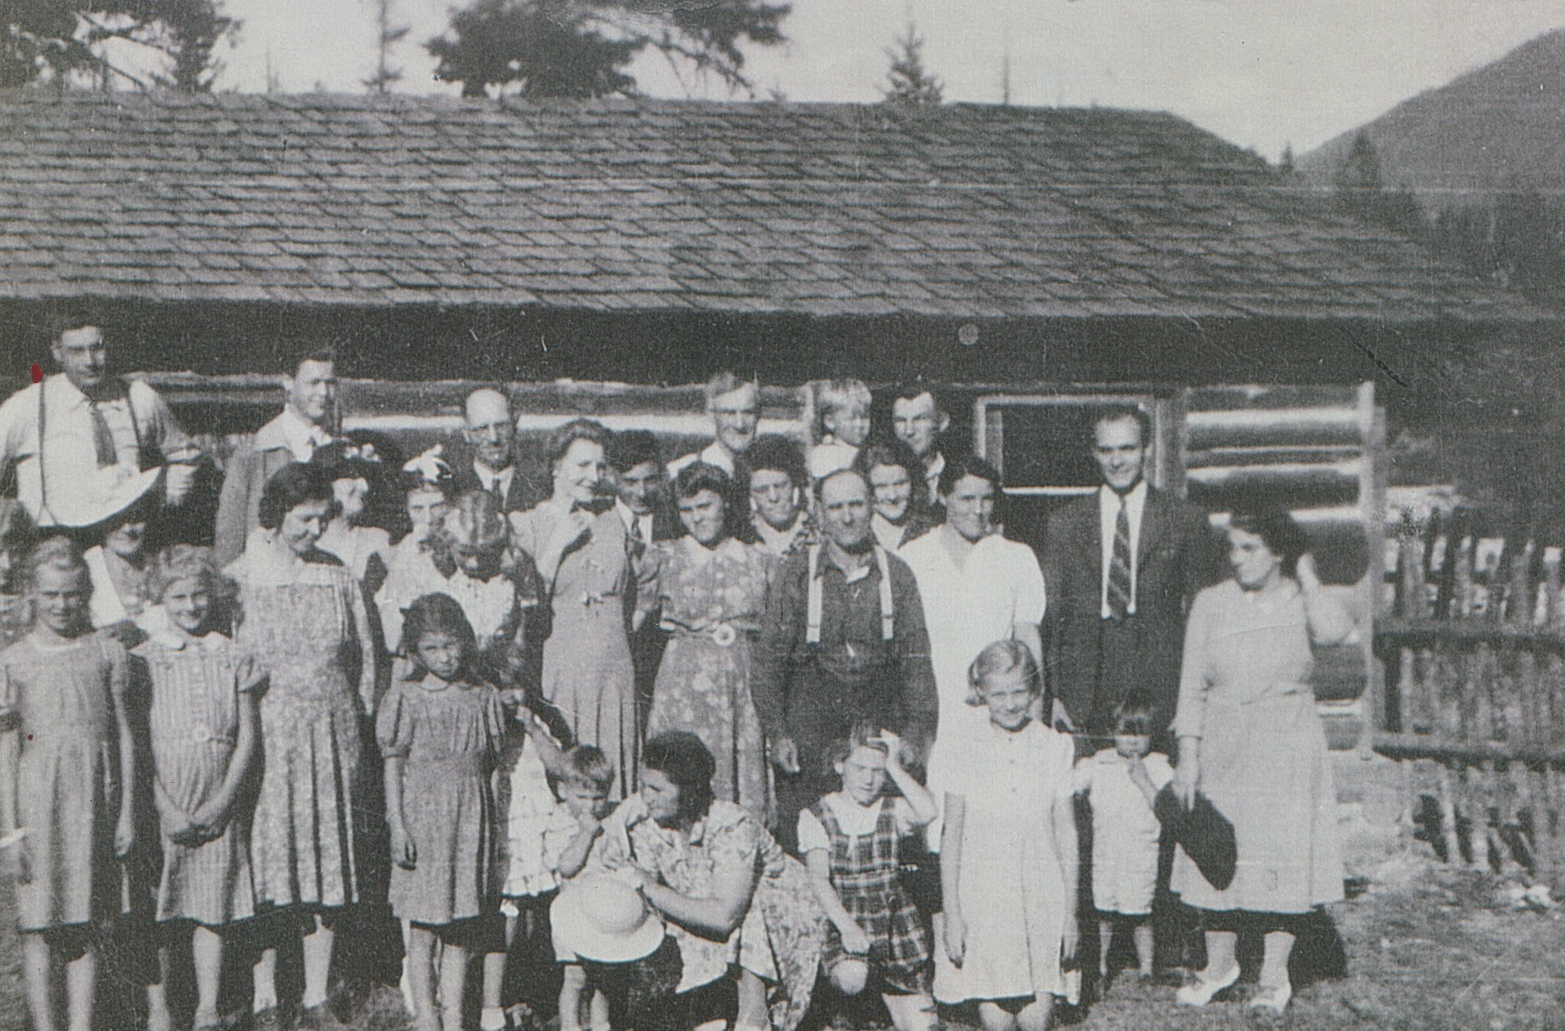 members in front of a log cabin